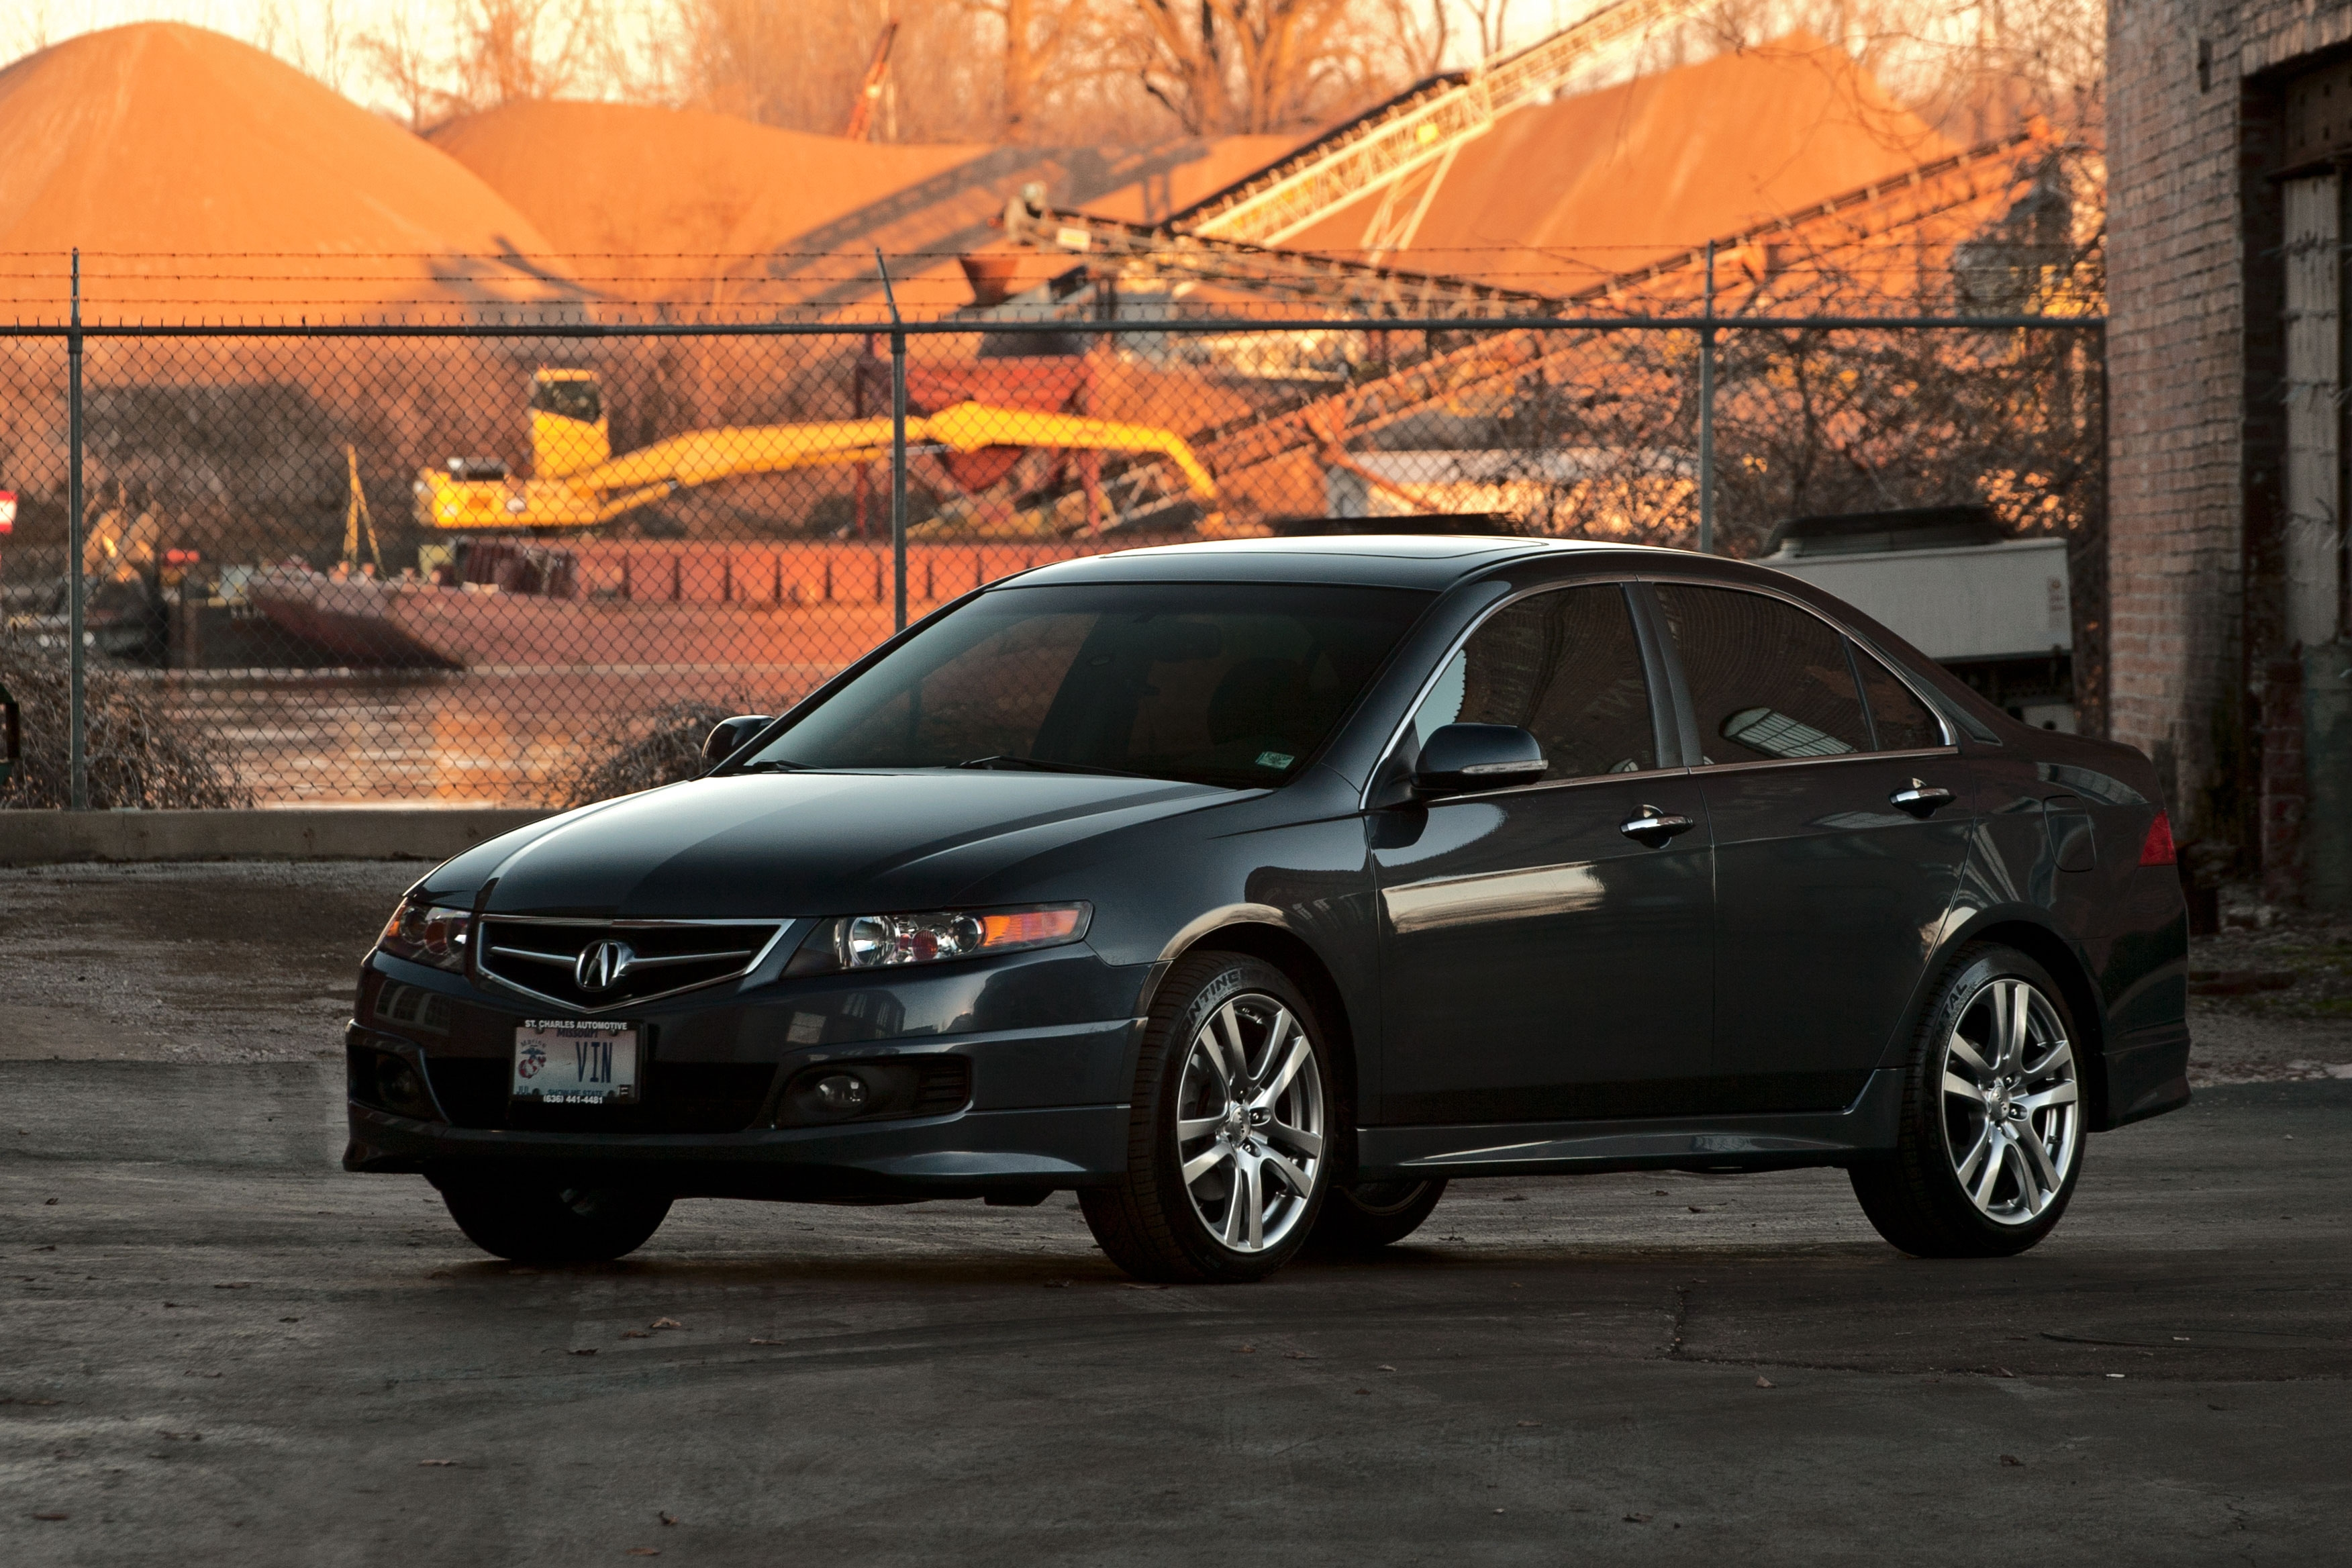 Usmc21112 2007 Acura Tsxs Photo Gallery At Cardomain Tsx Radio Wiring Diagram Tsx39178864004 Original